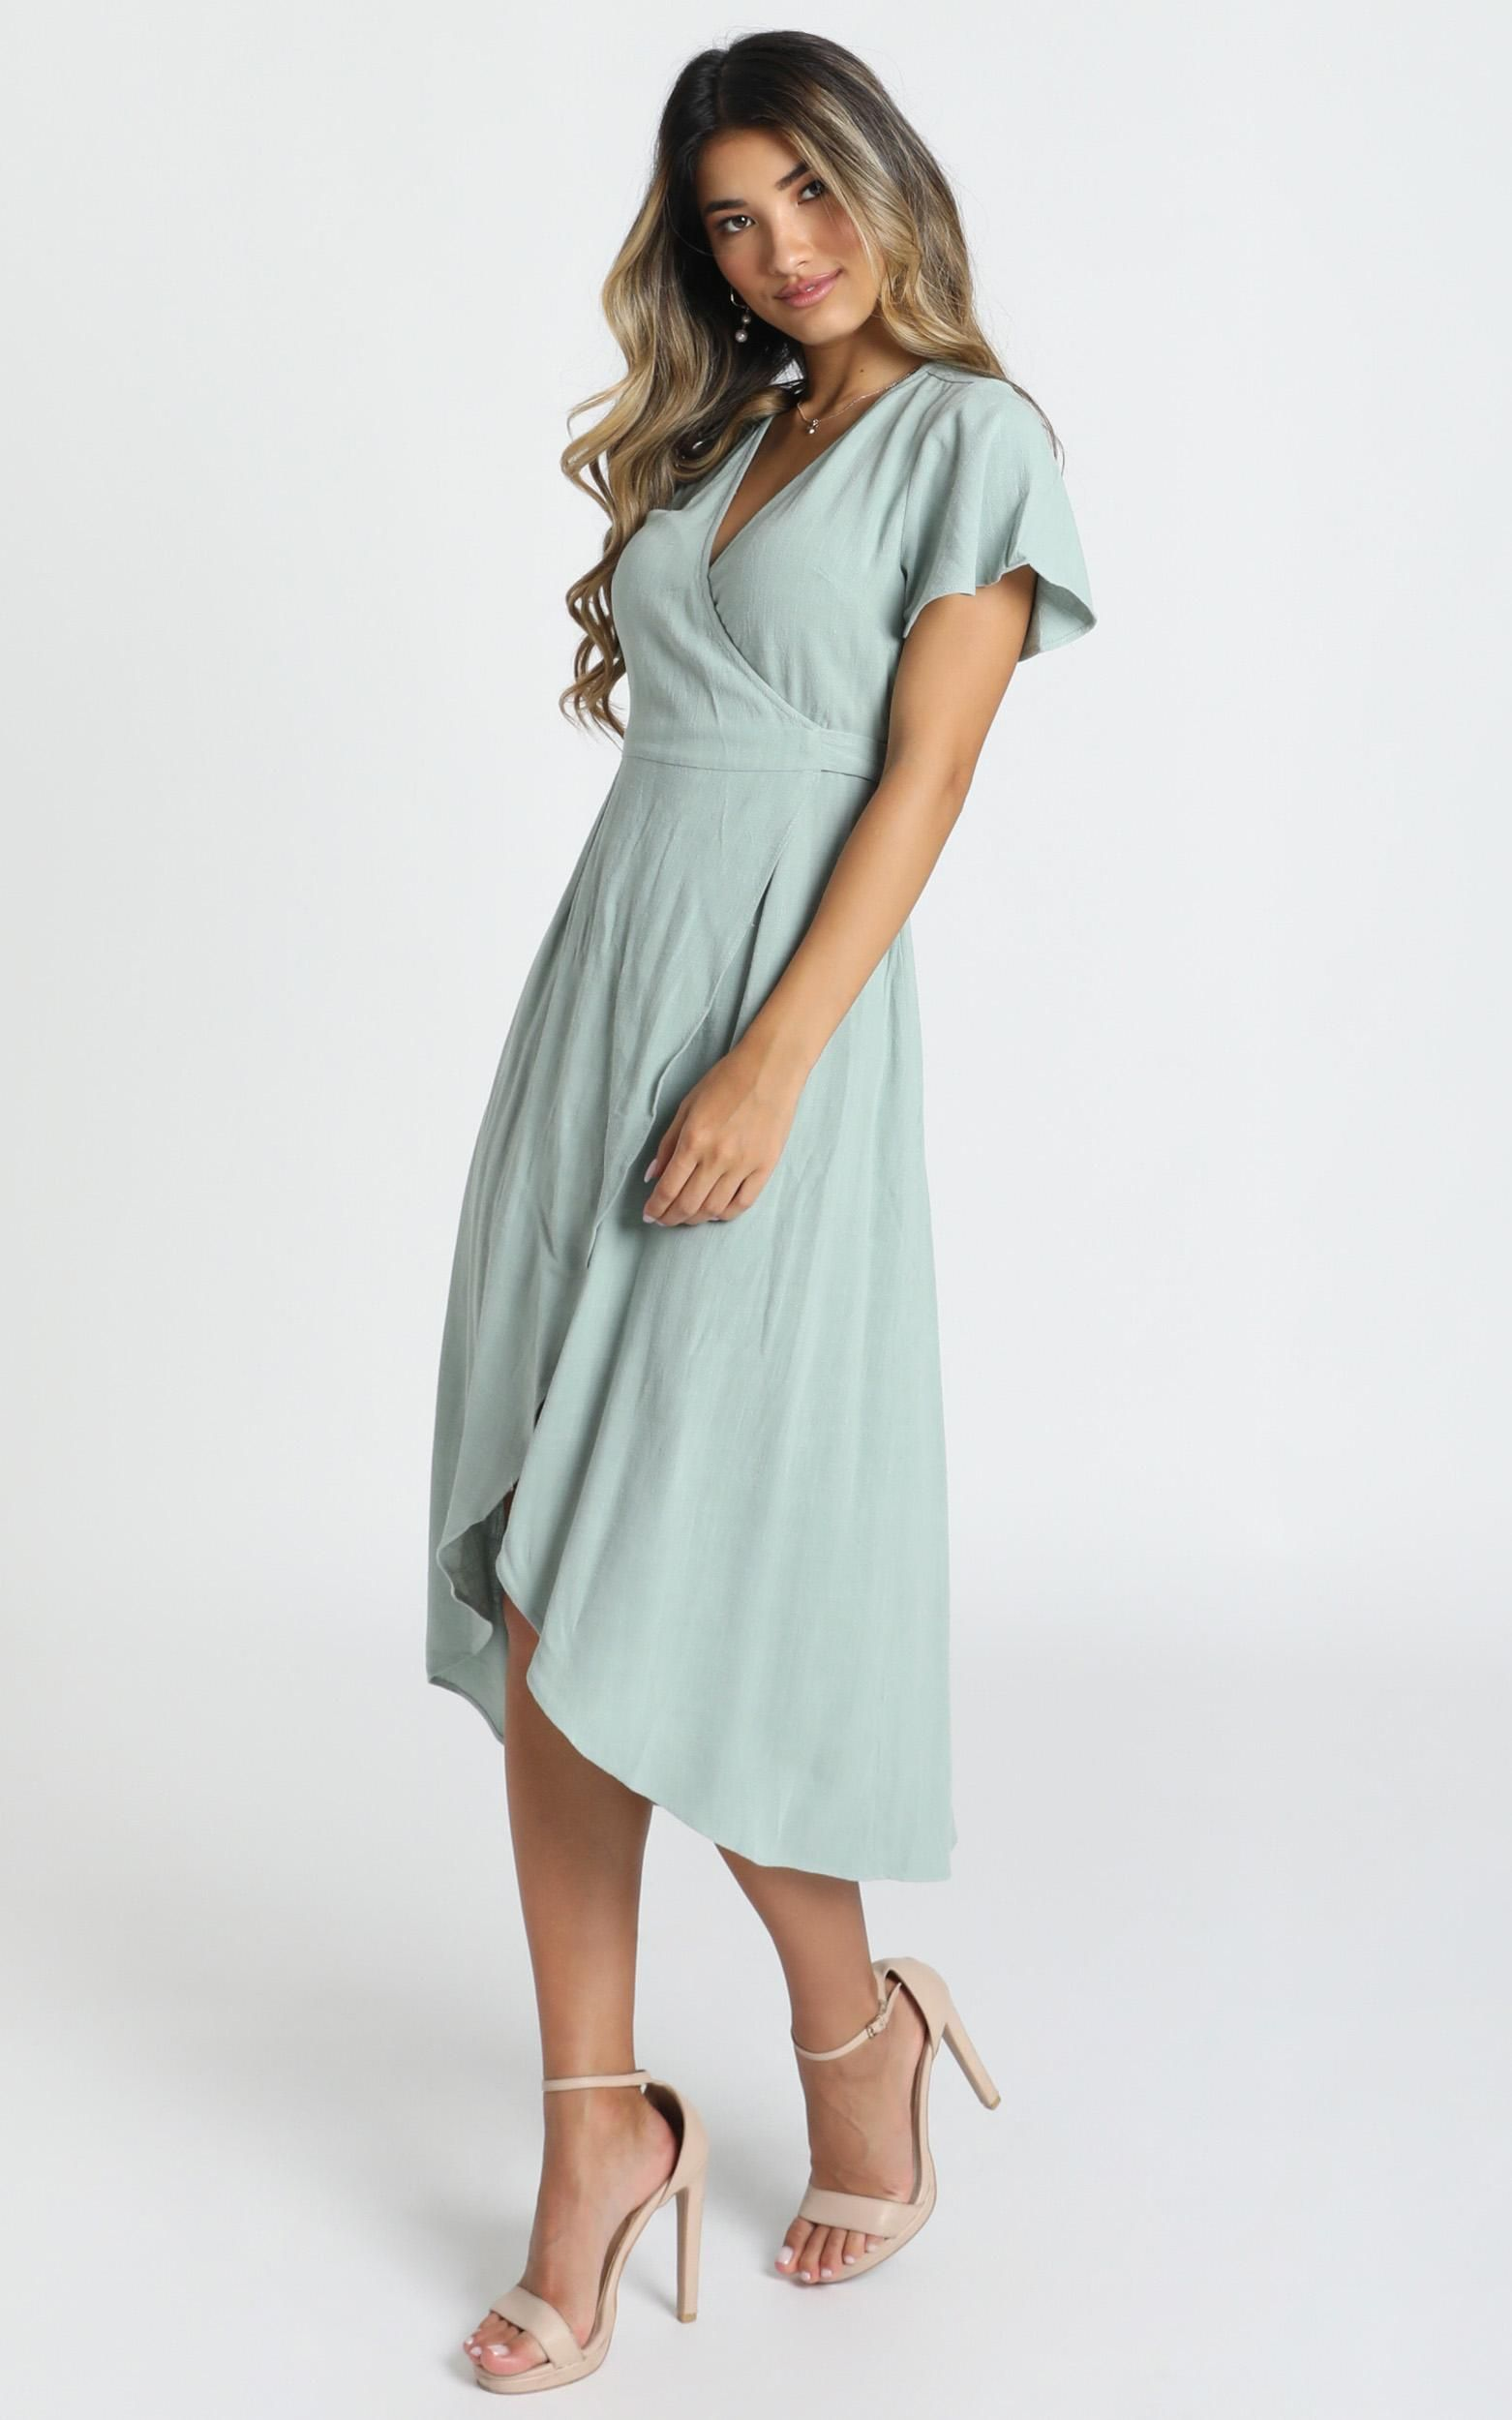 World Of Dream Dress In Sage -   17 sage green bridesmaid dresses modest ideas